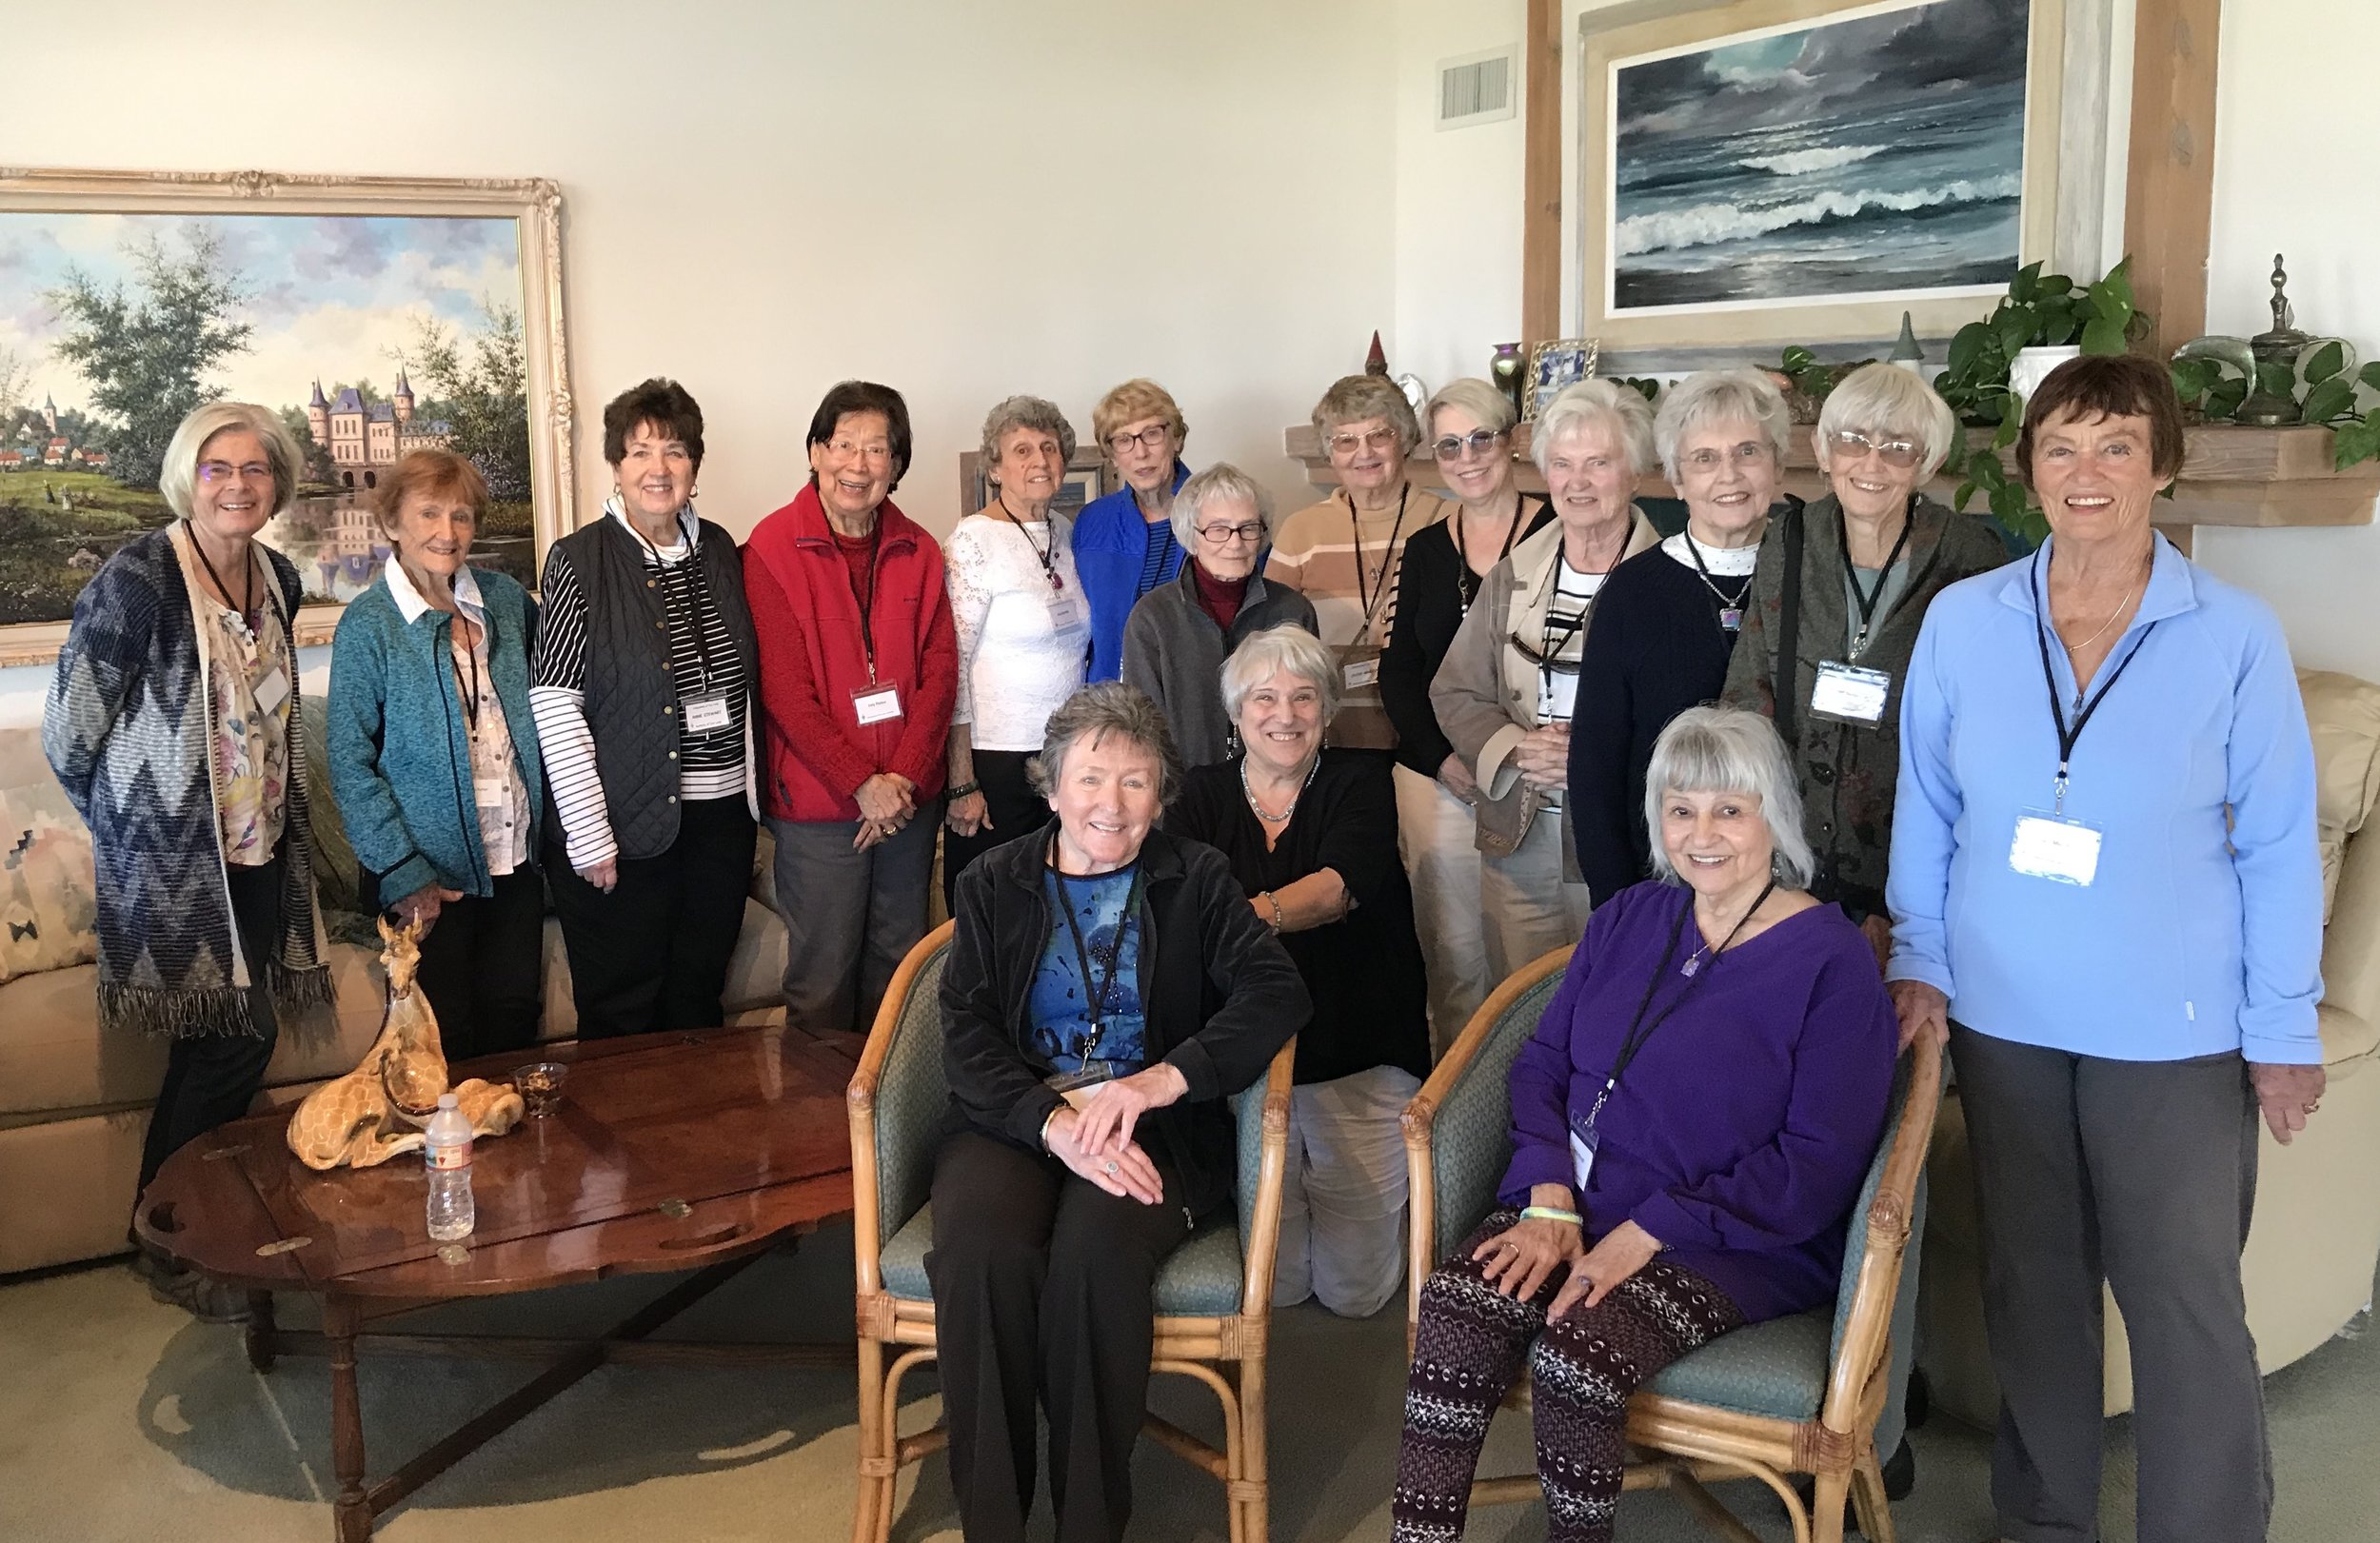 Companions of Our Lady Widows Fellowship enjoying a day of reflection.